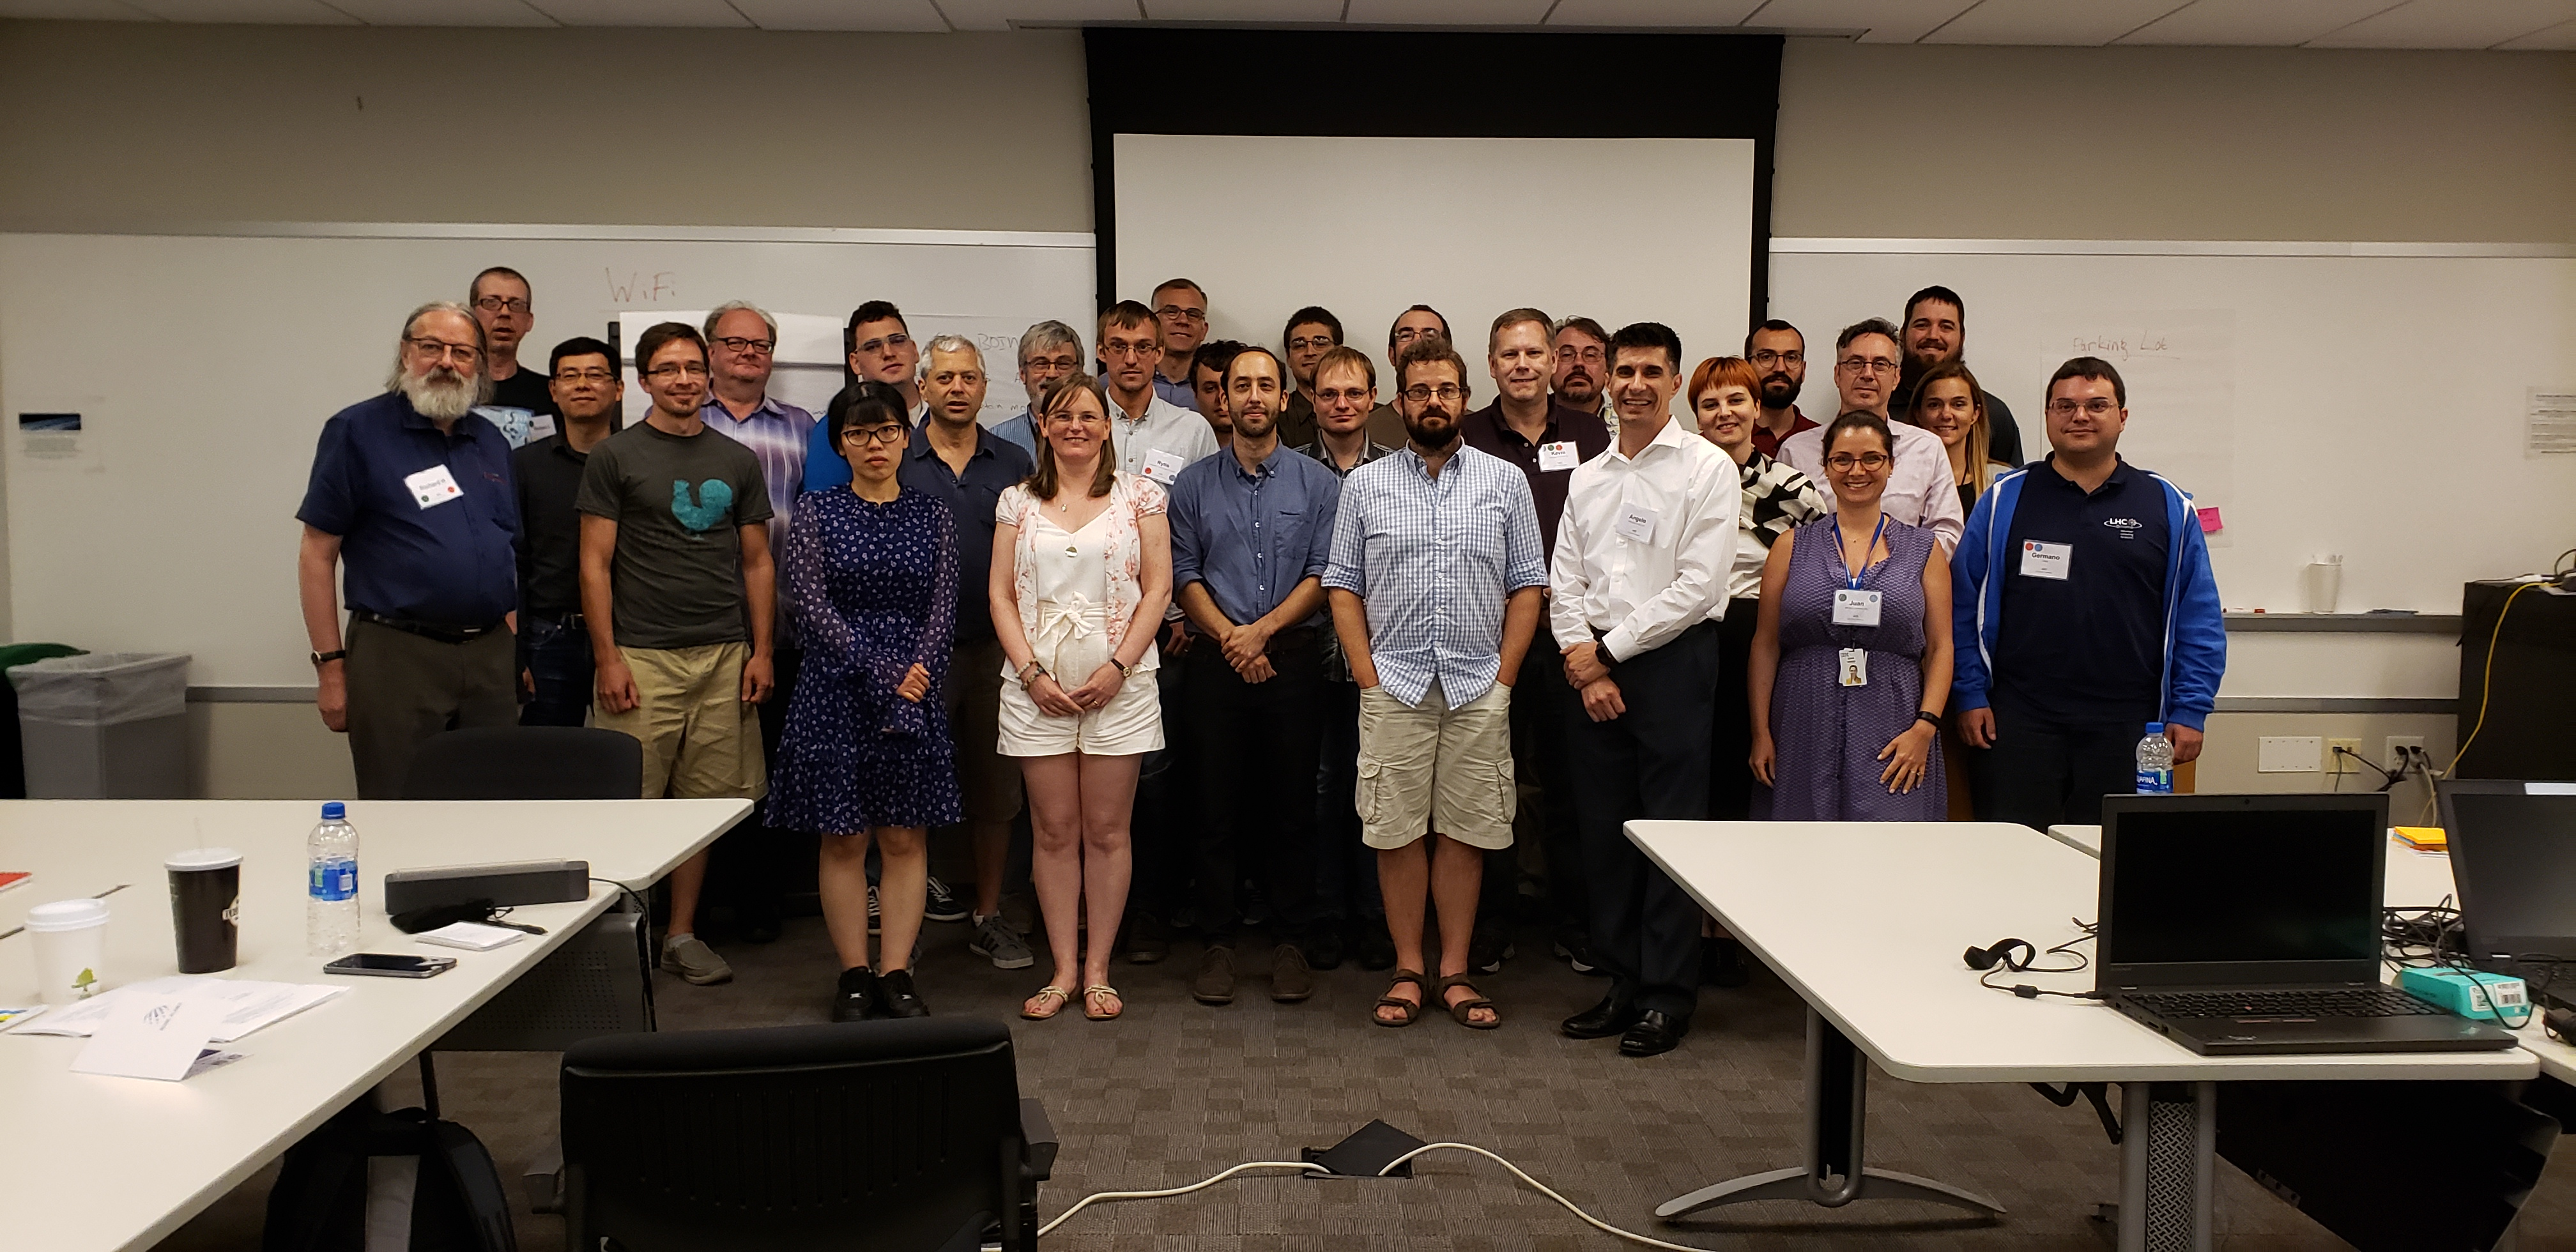 Attendees of the 2019 BOINC Workshop 1